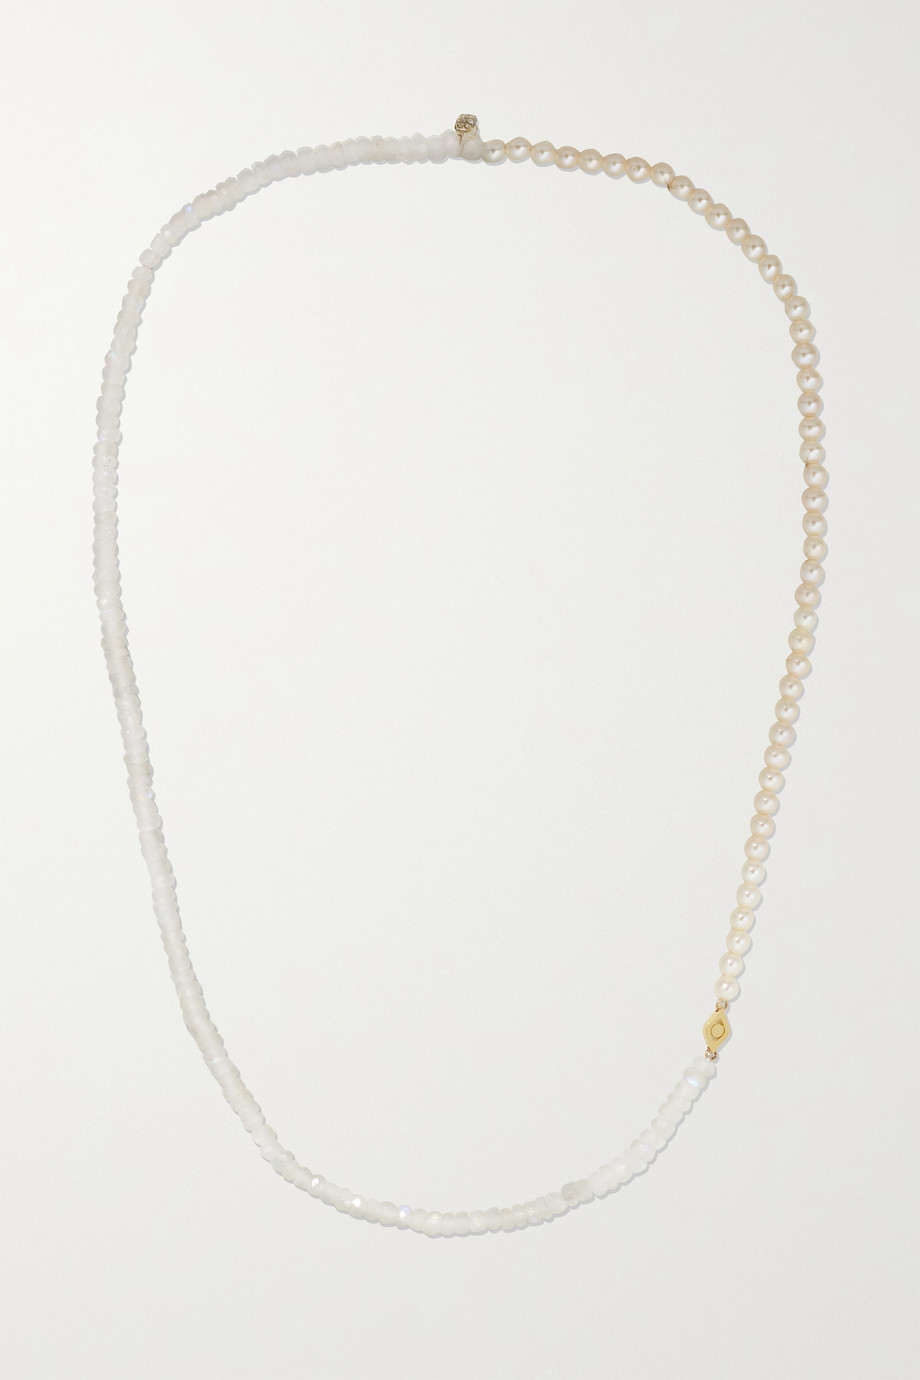 Sydney Evan 14-karat gold, moonstone and pearl necklace